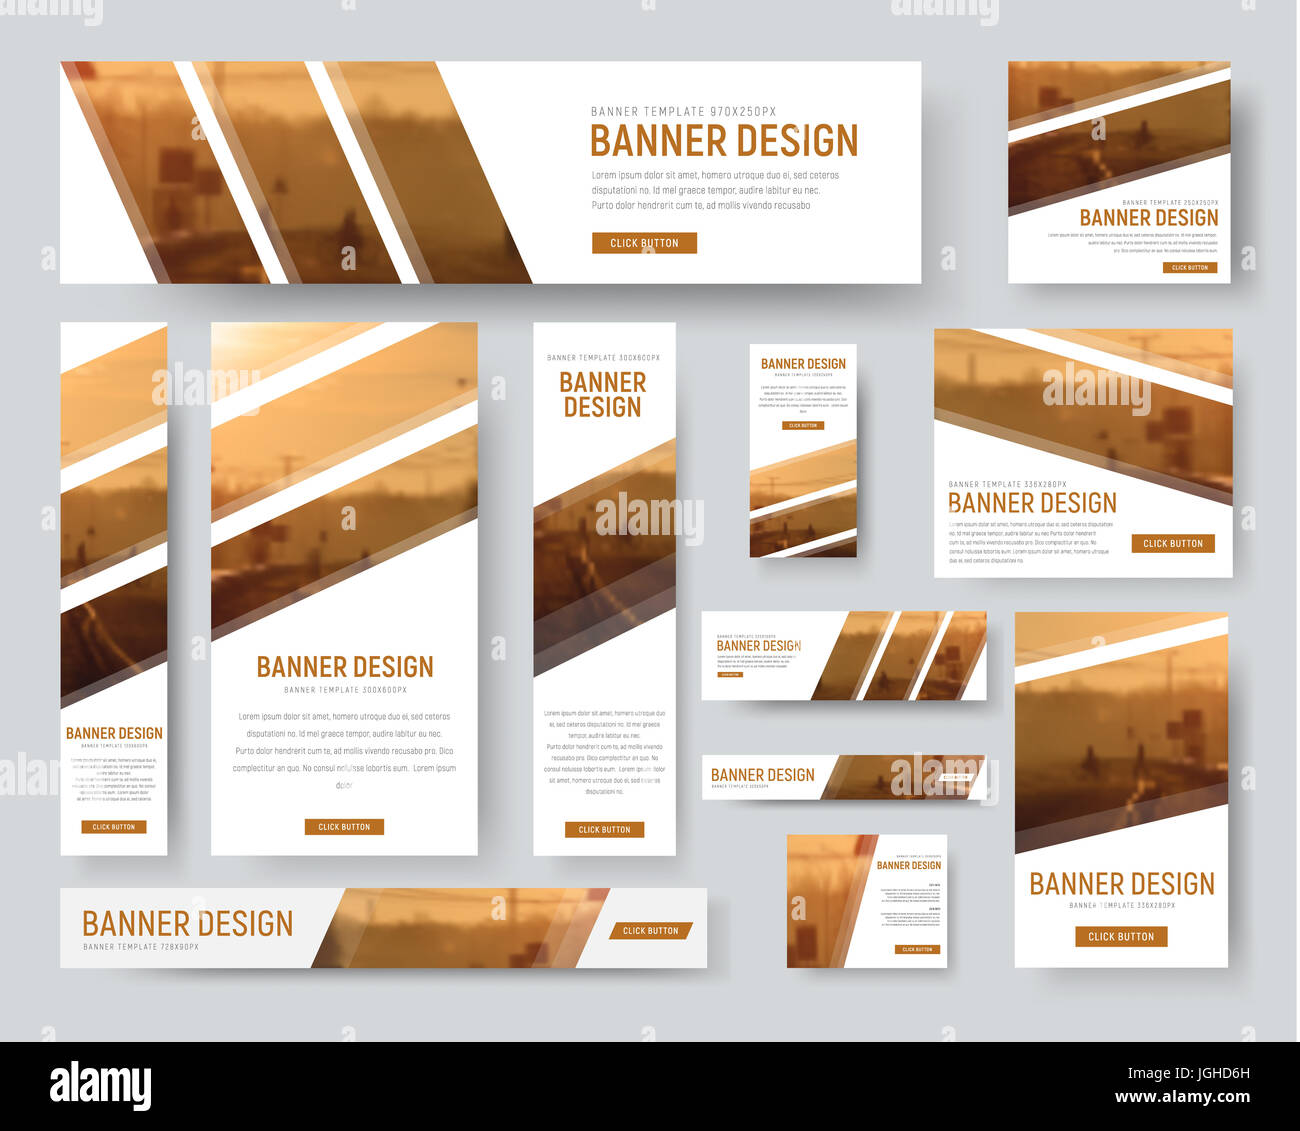 set of standard size banners web templates with diagonal stripes for photos blurred background for sample